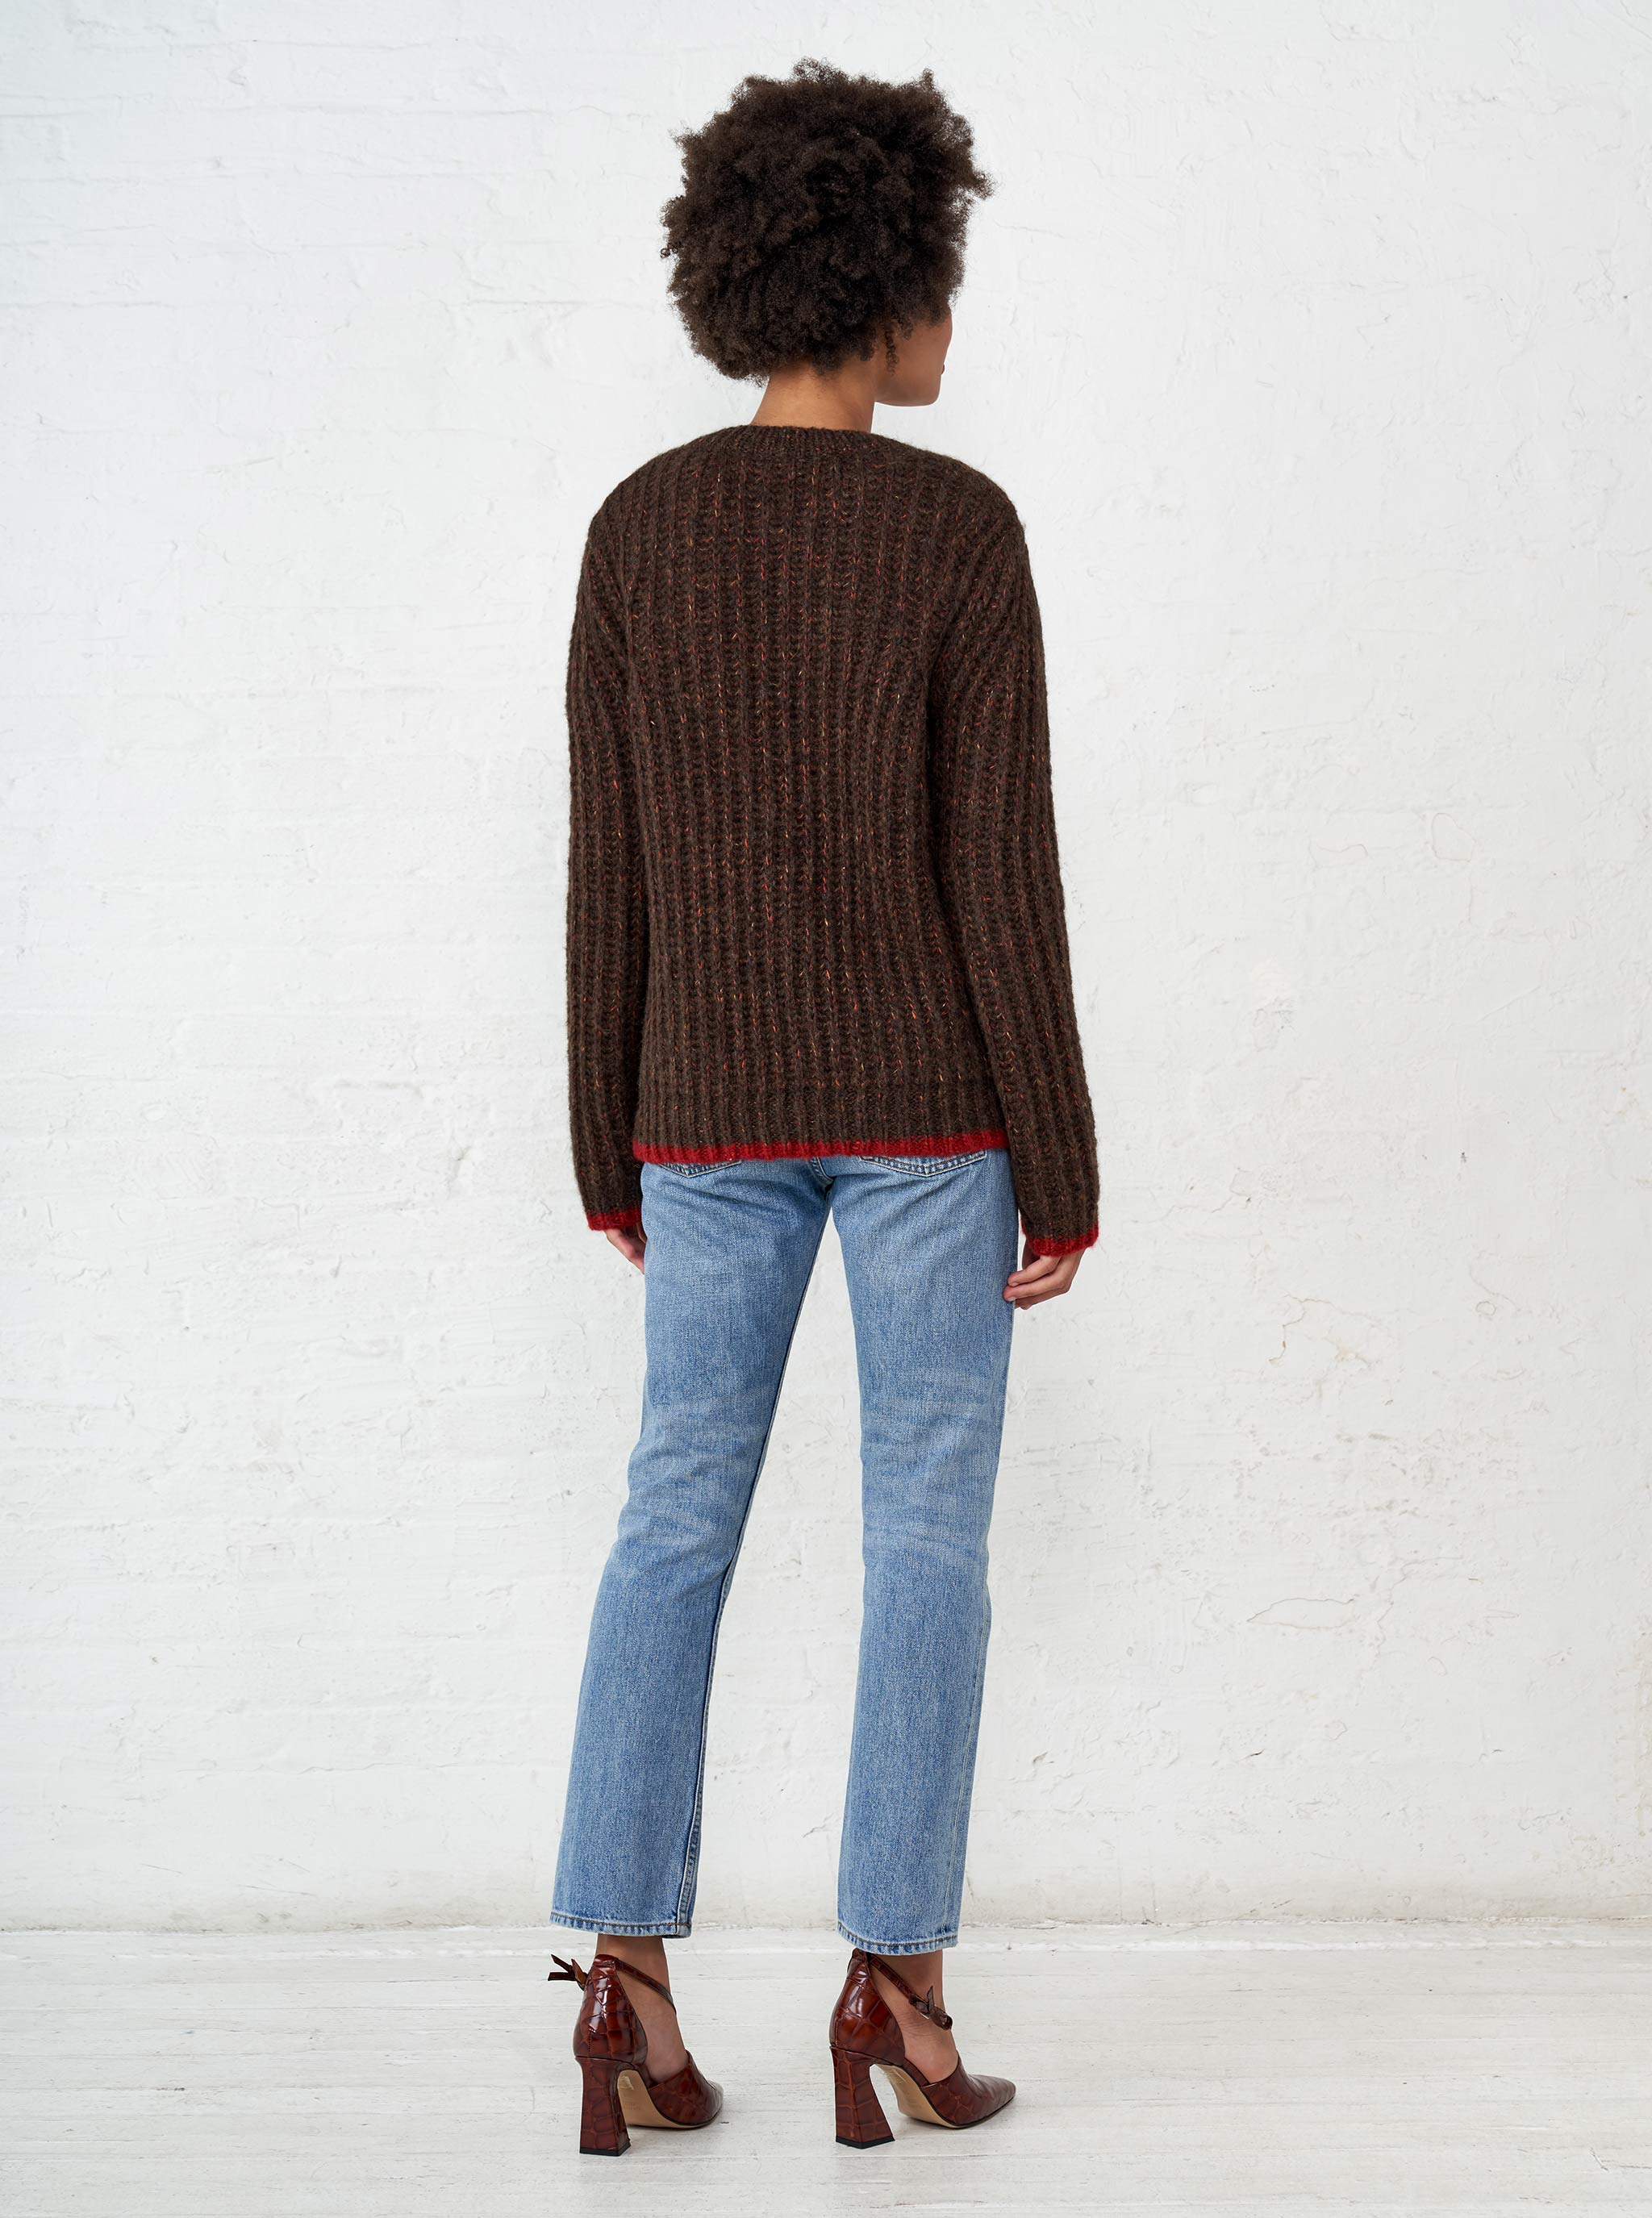 Fuzzy Wuzzy V-Neck Sweater - La Ligne